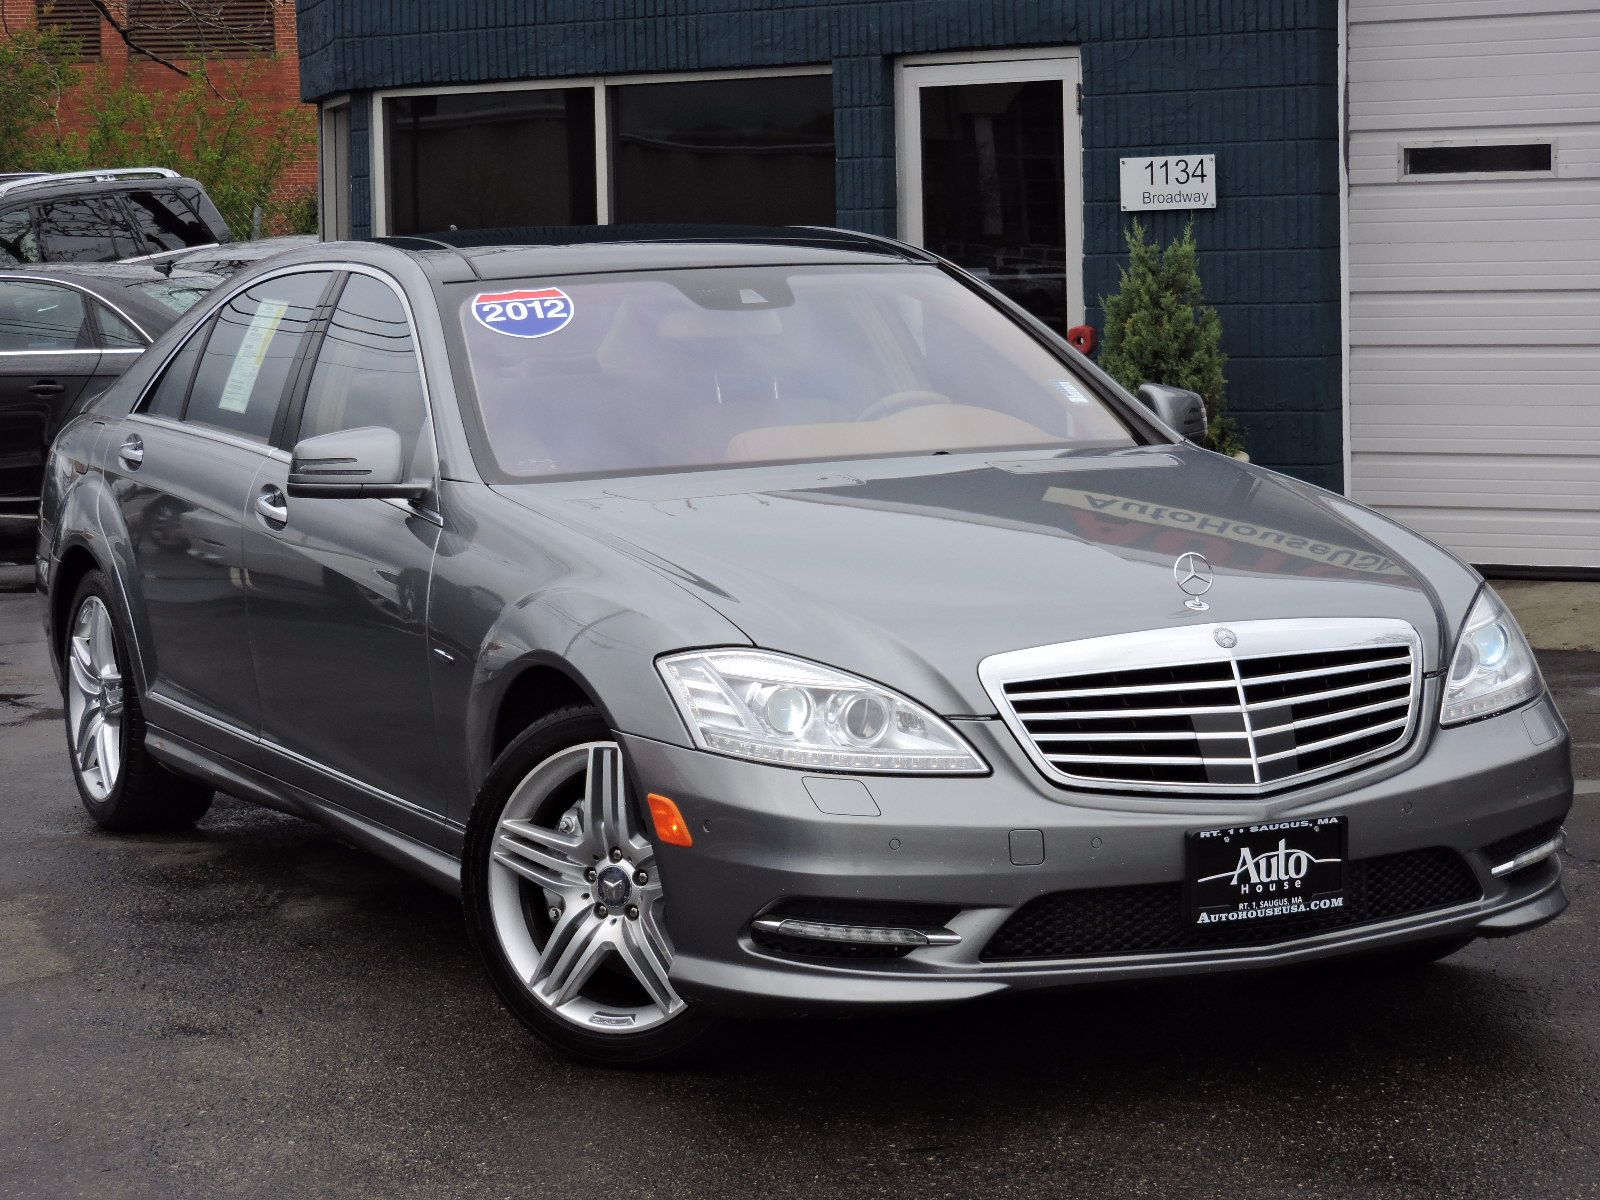 used 2012 mercedes benz s 550 ltz at auto house usa saugus. Black Bedroom Furniture Sets. Home Design Ideas